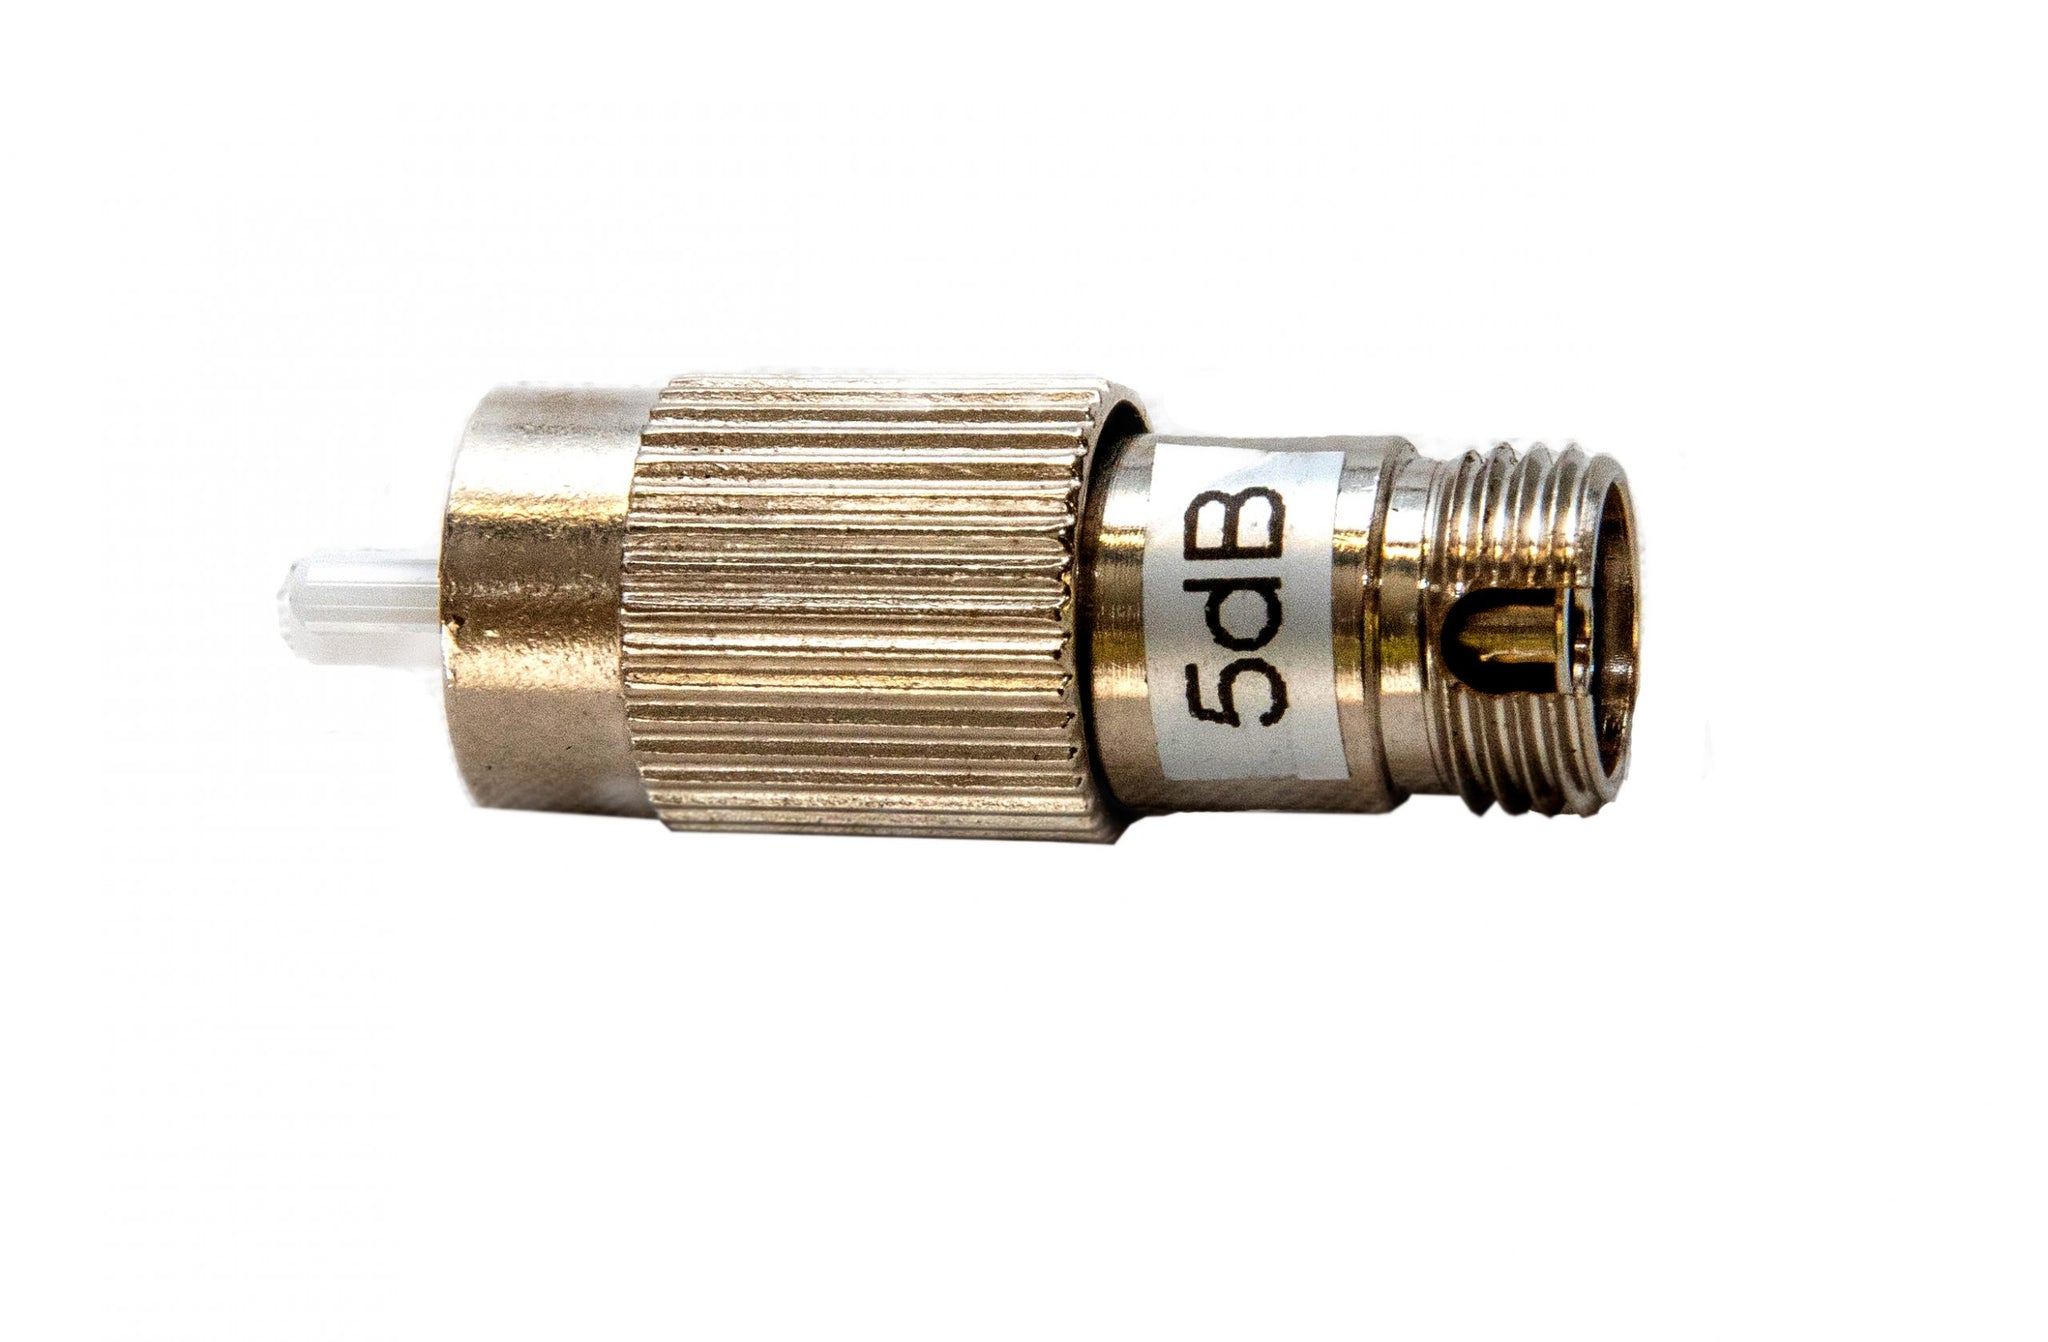 5db Optical Attenuator